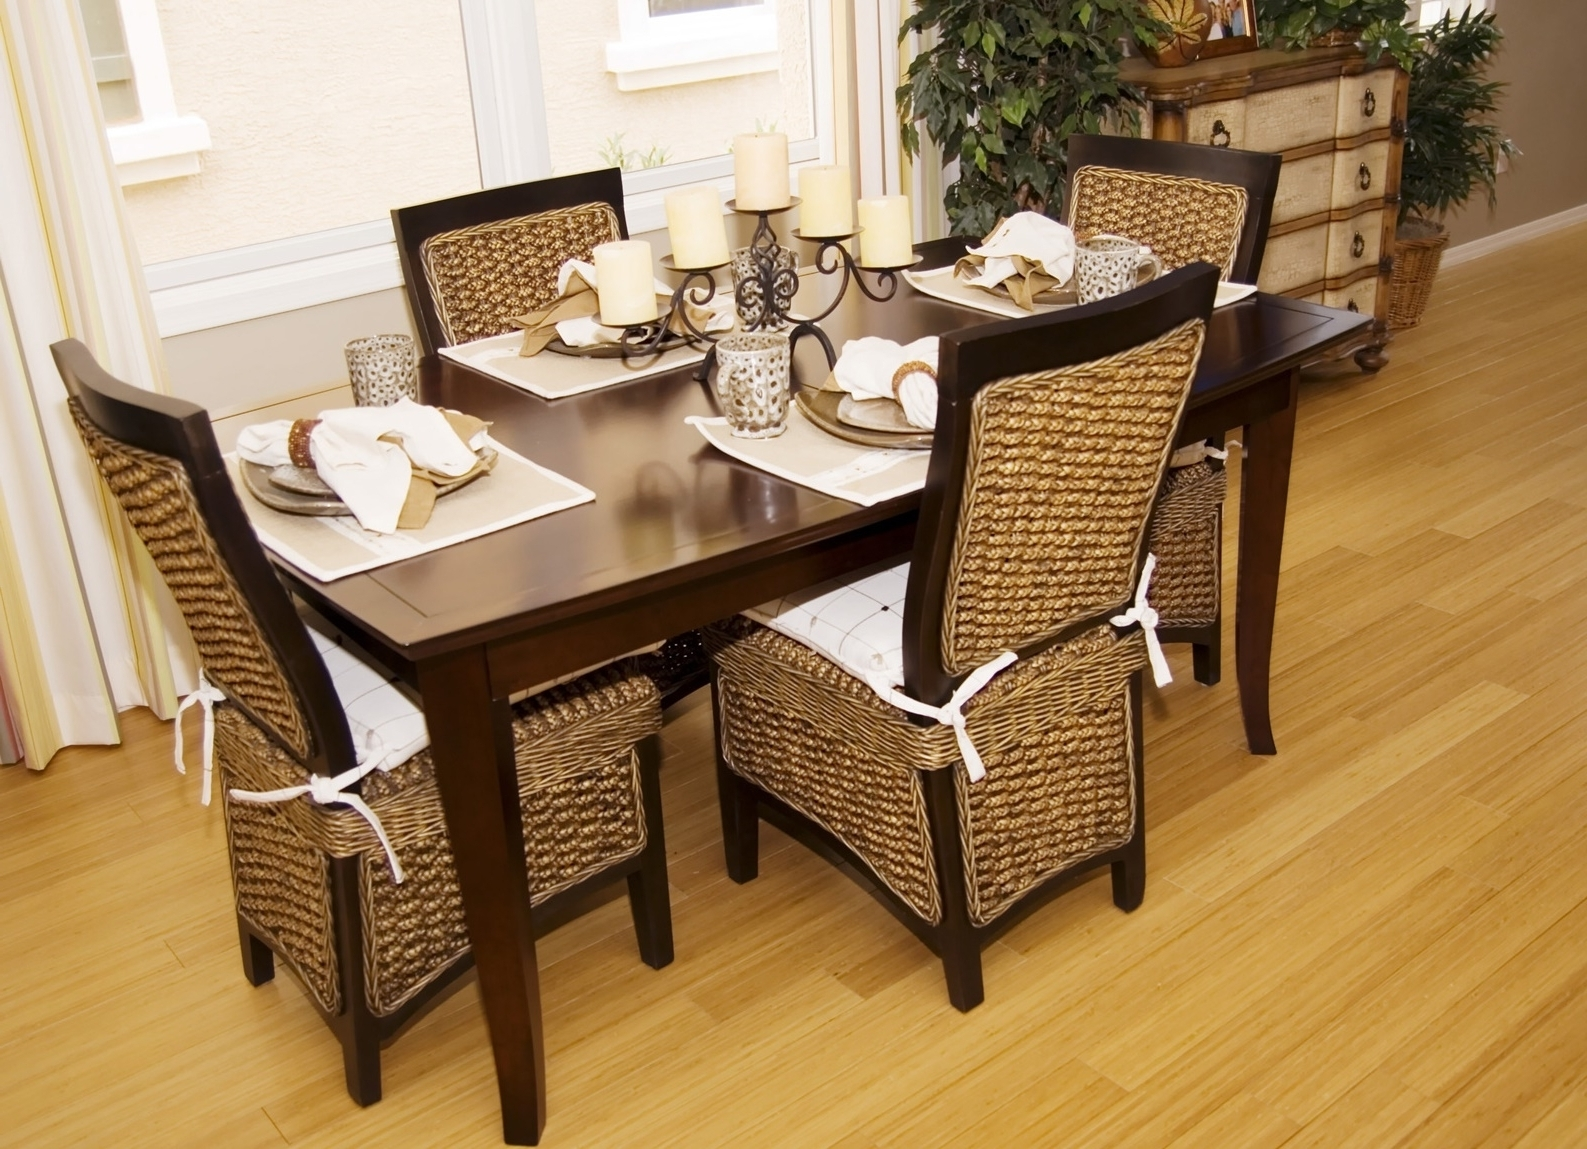 Favorite Dining Room With Farmhouse Table And Wicker Chairs Rustic With With Rattan Dining Tables And Chairs (View 10 of 25)